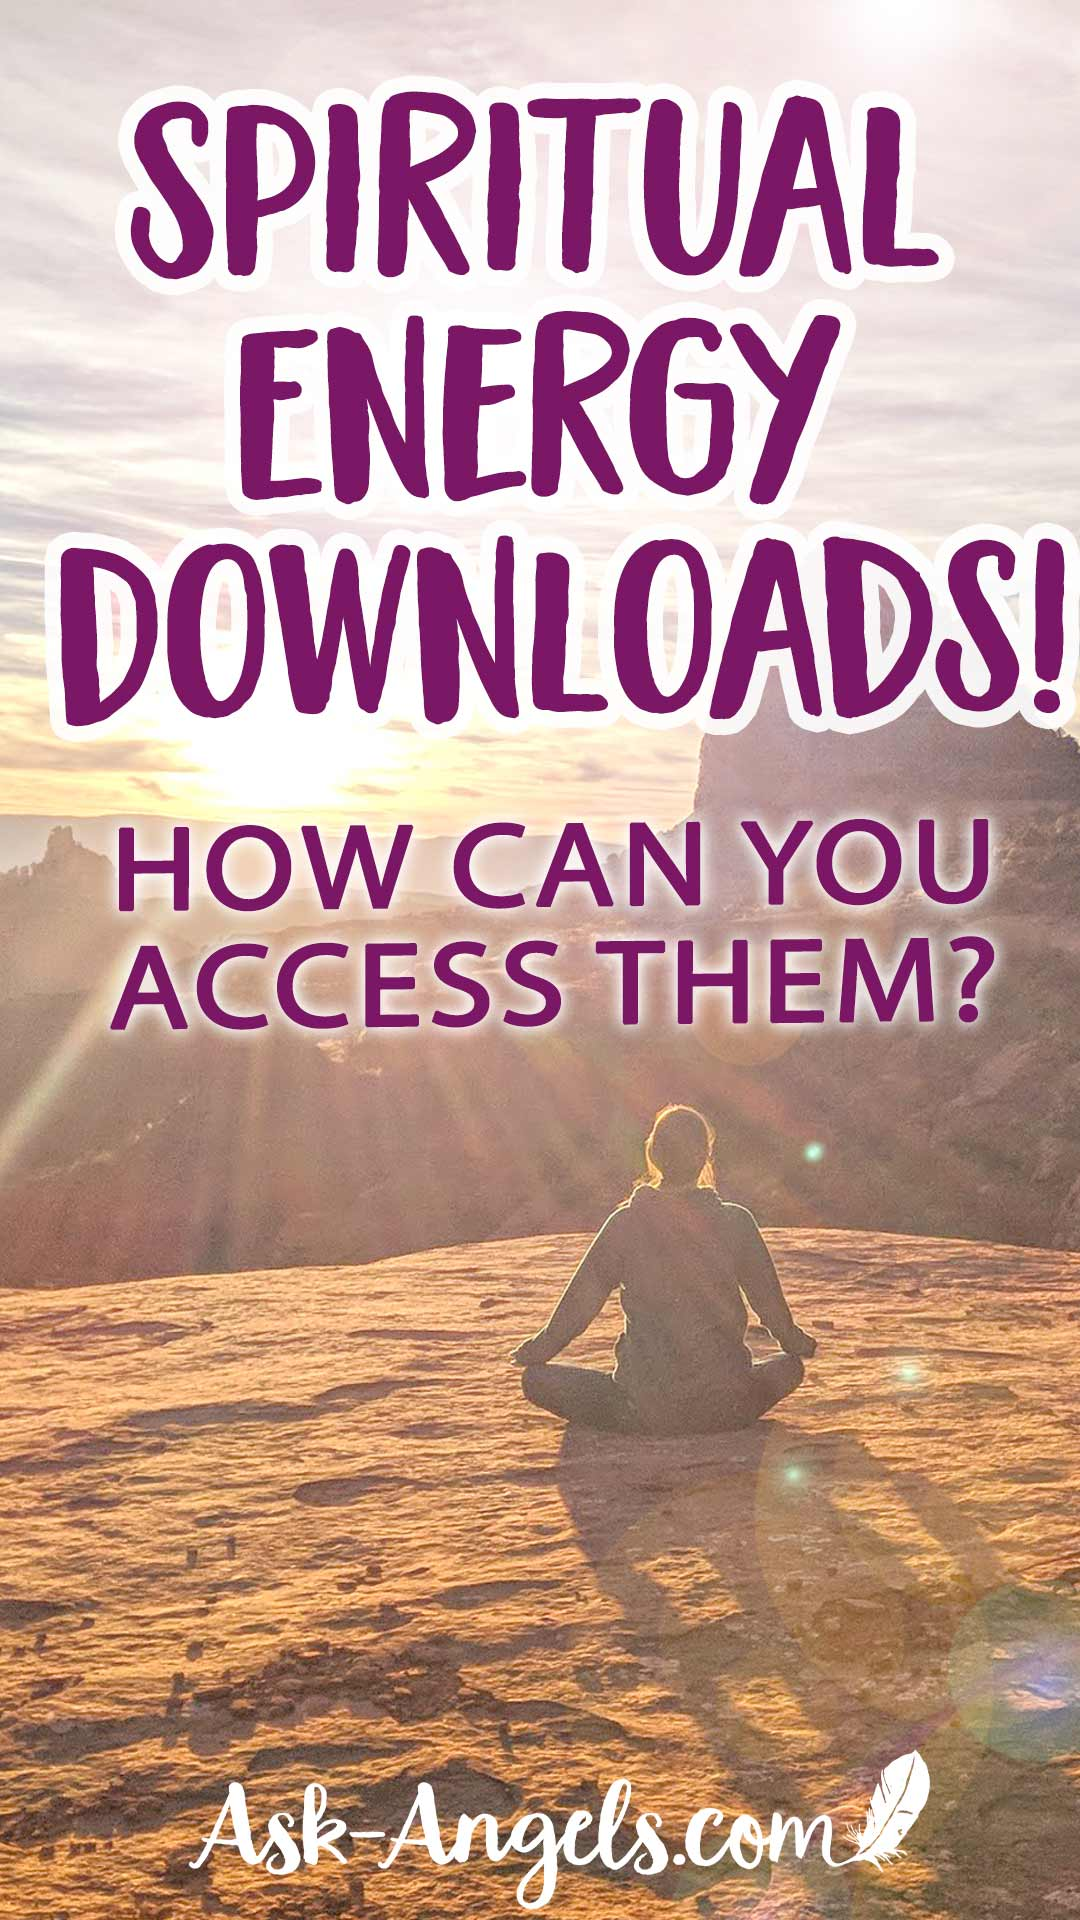 Spiritual Energy Downloads. What are they and how can you access them?